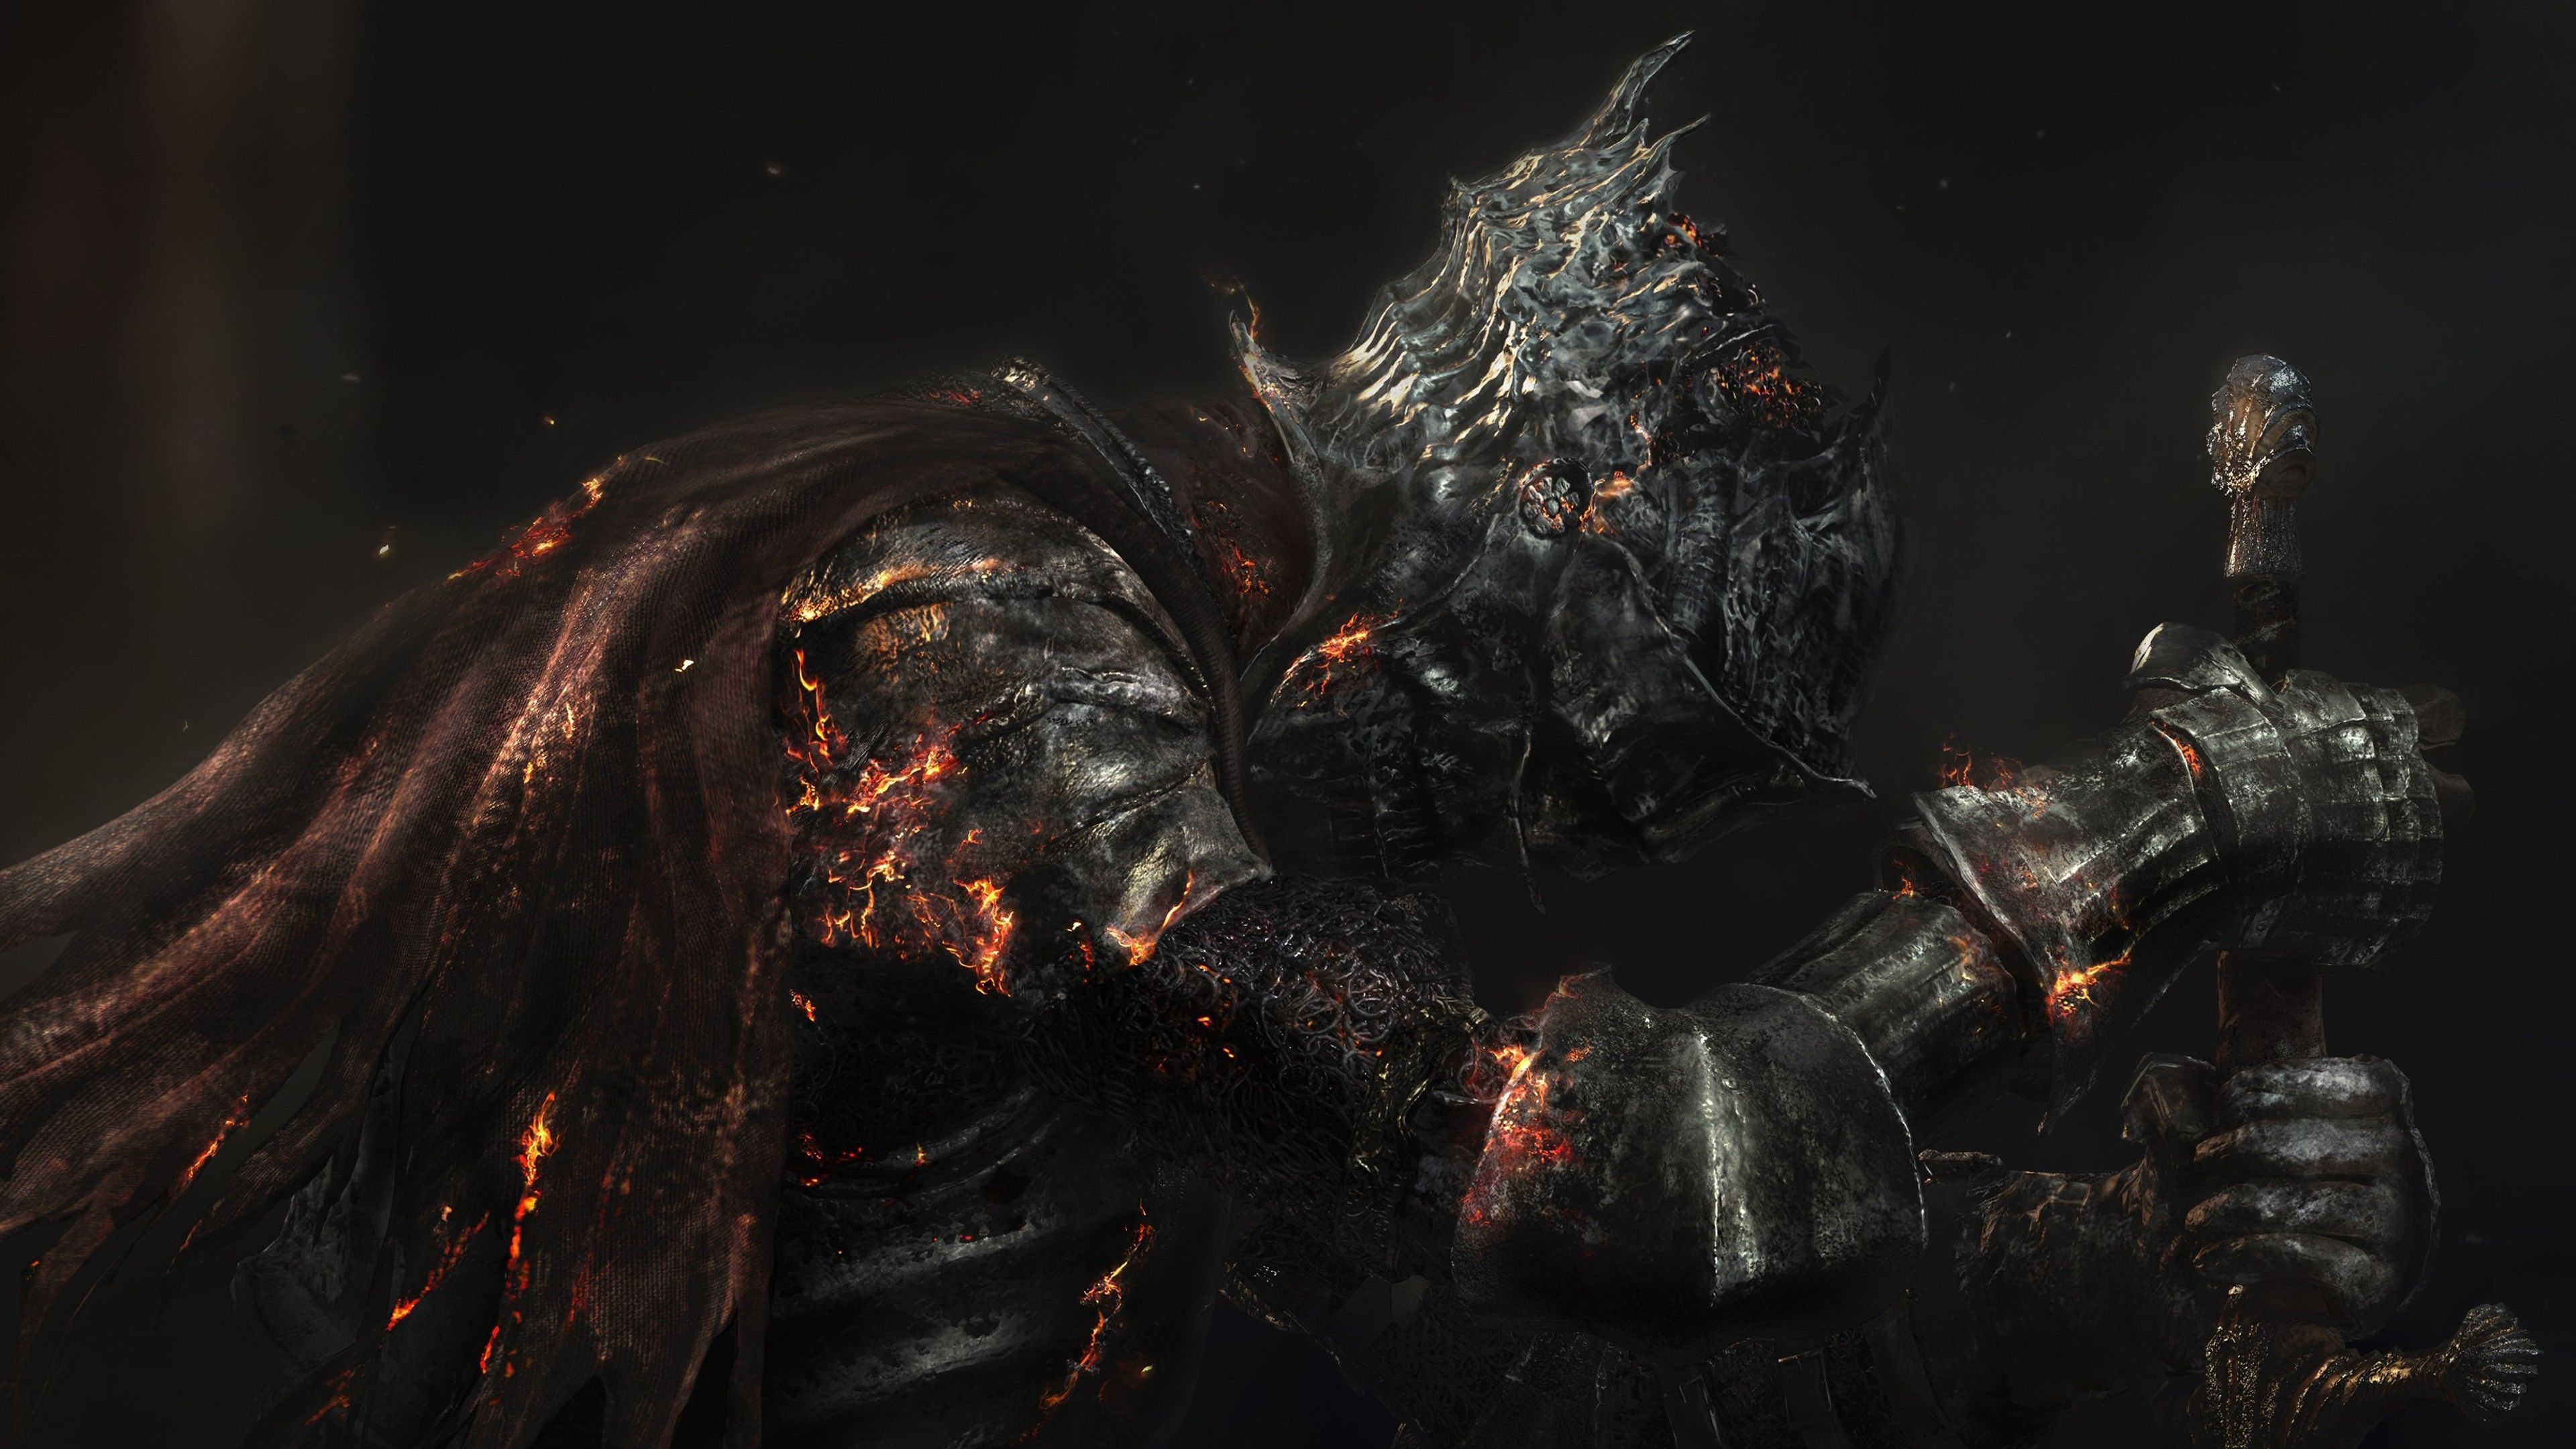 dark souls background, hd dark souls wallpapers